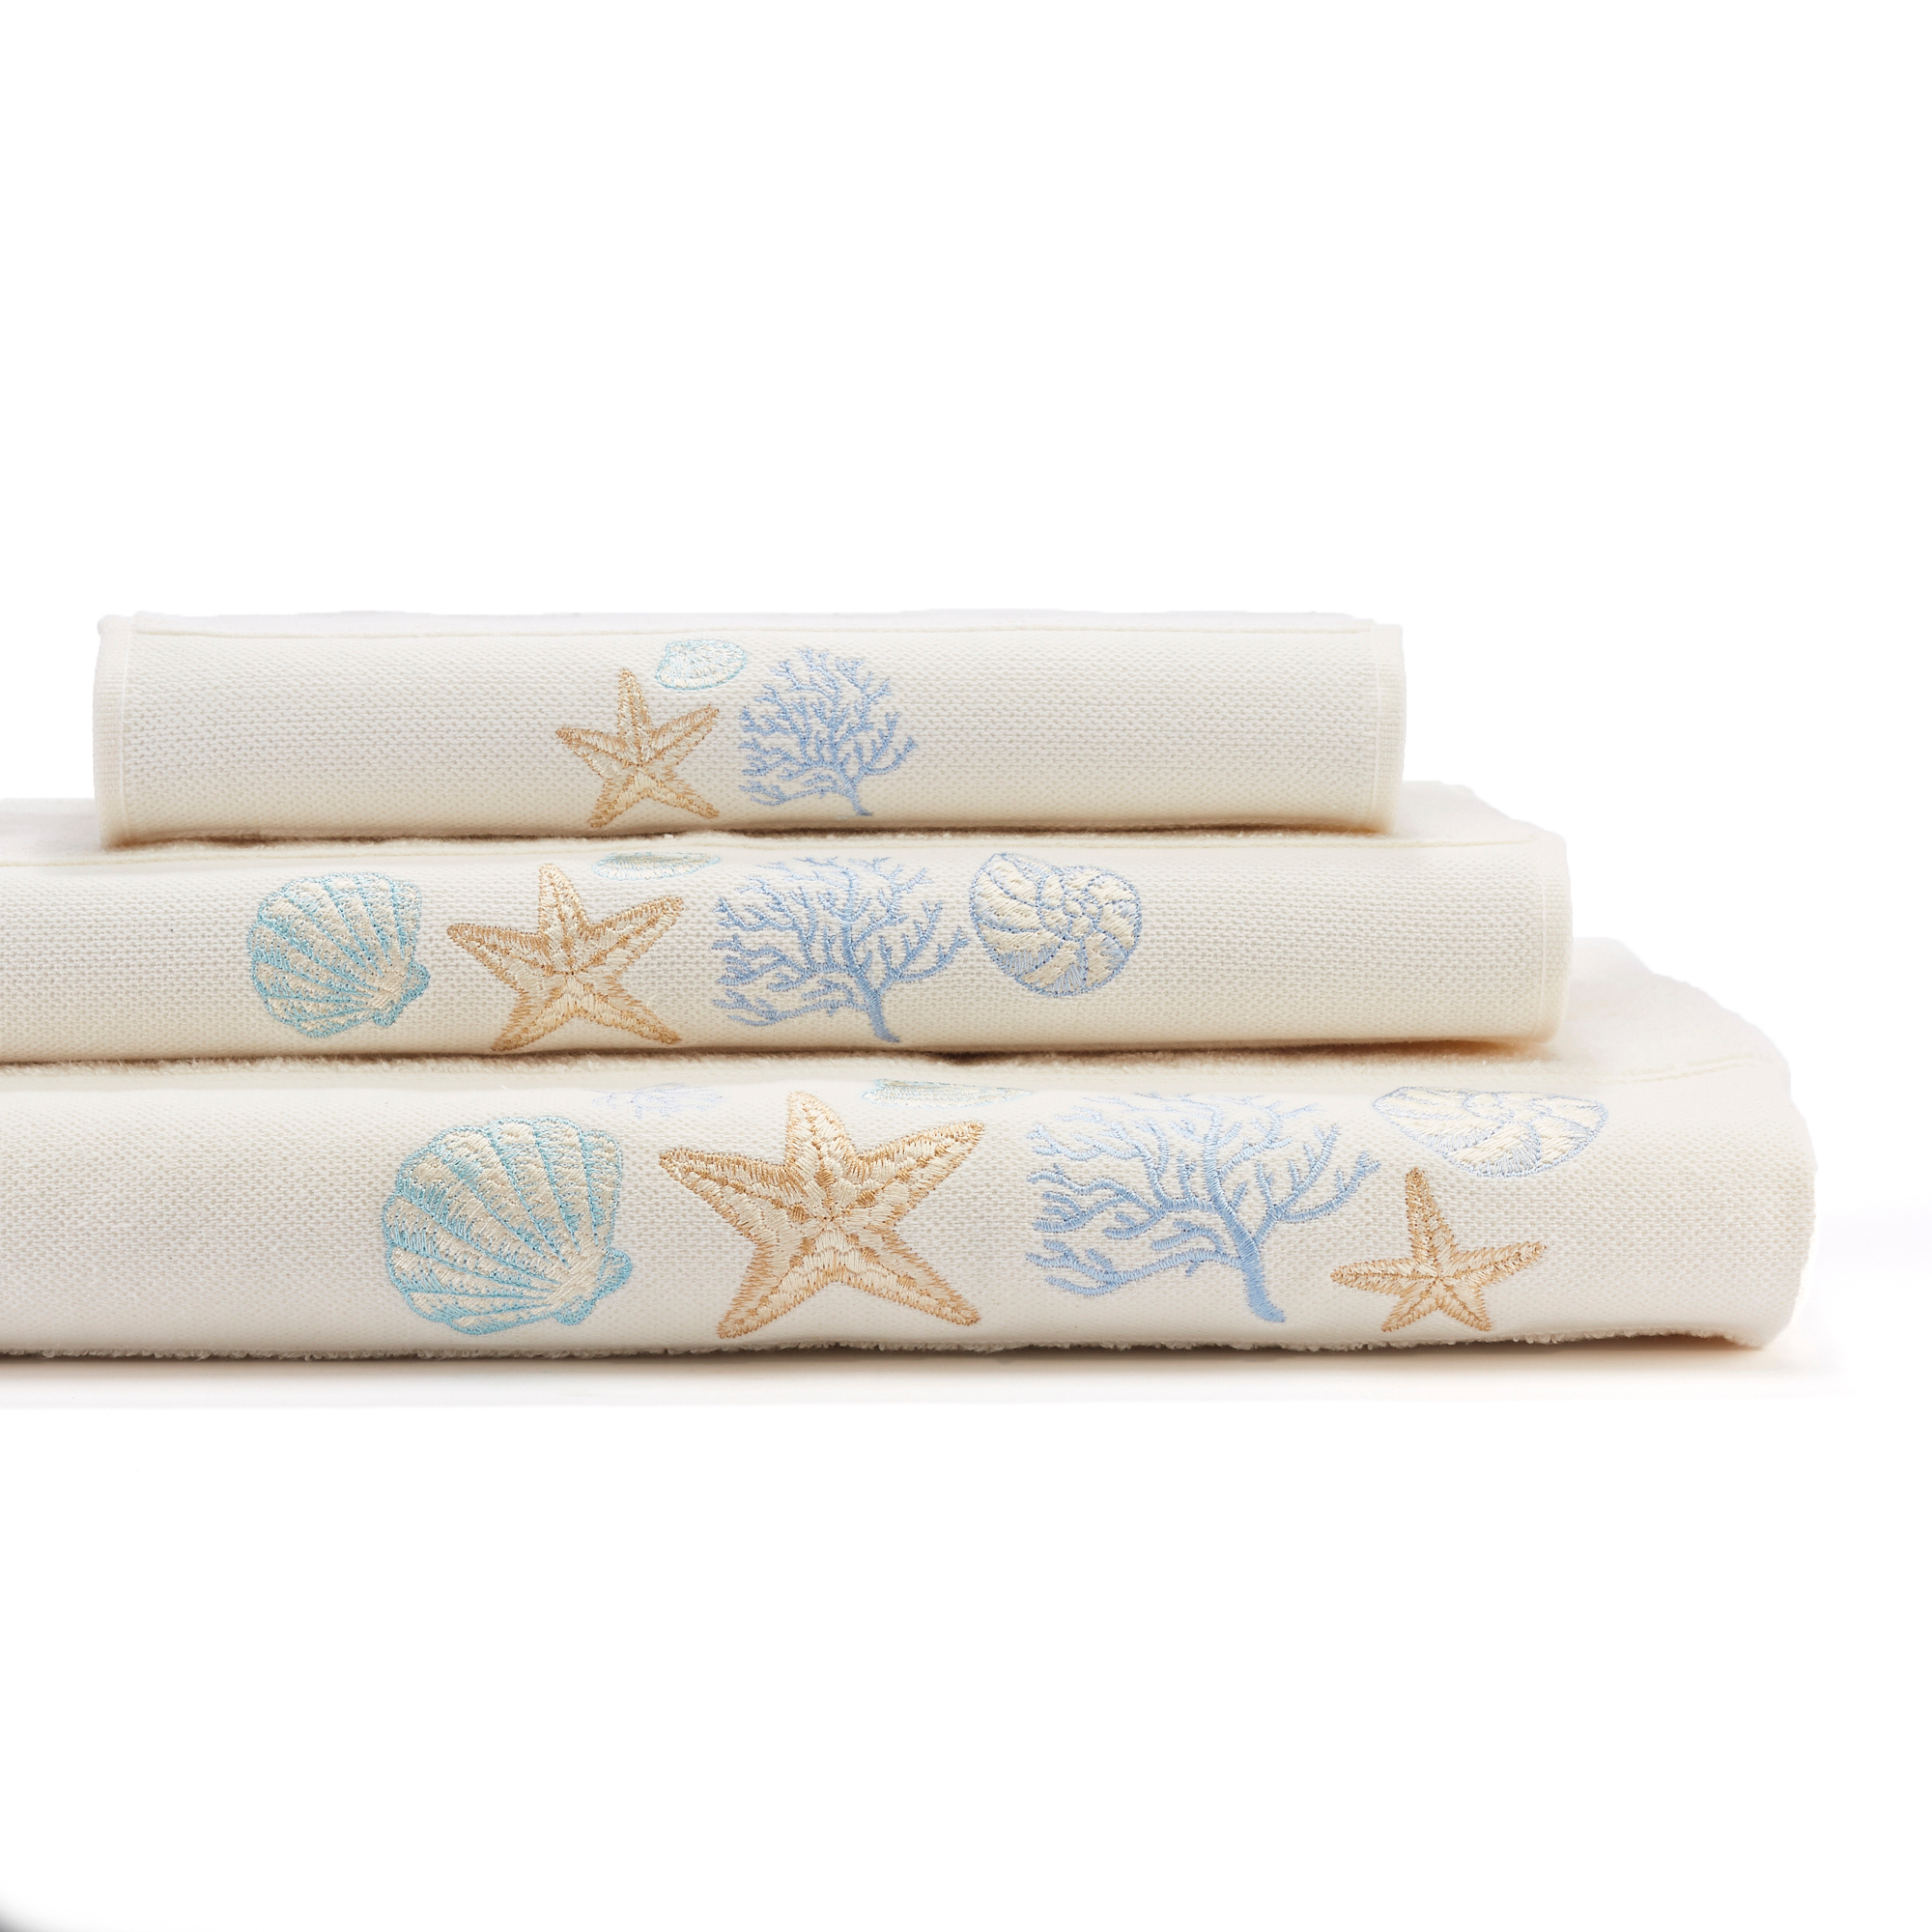 Seashell Treasures Bath Towels